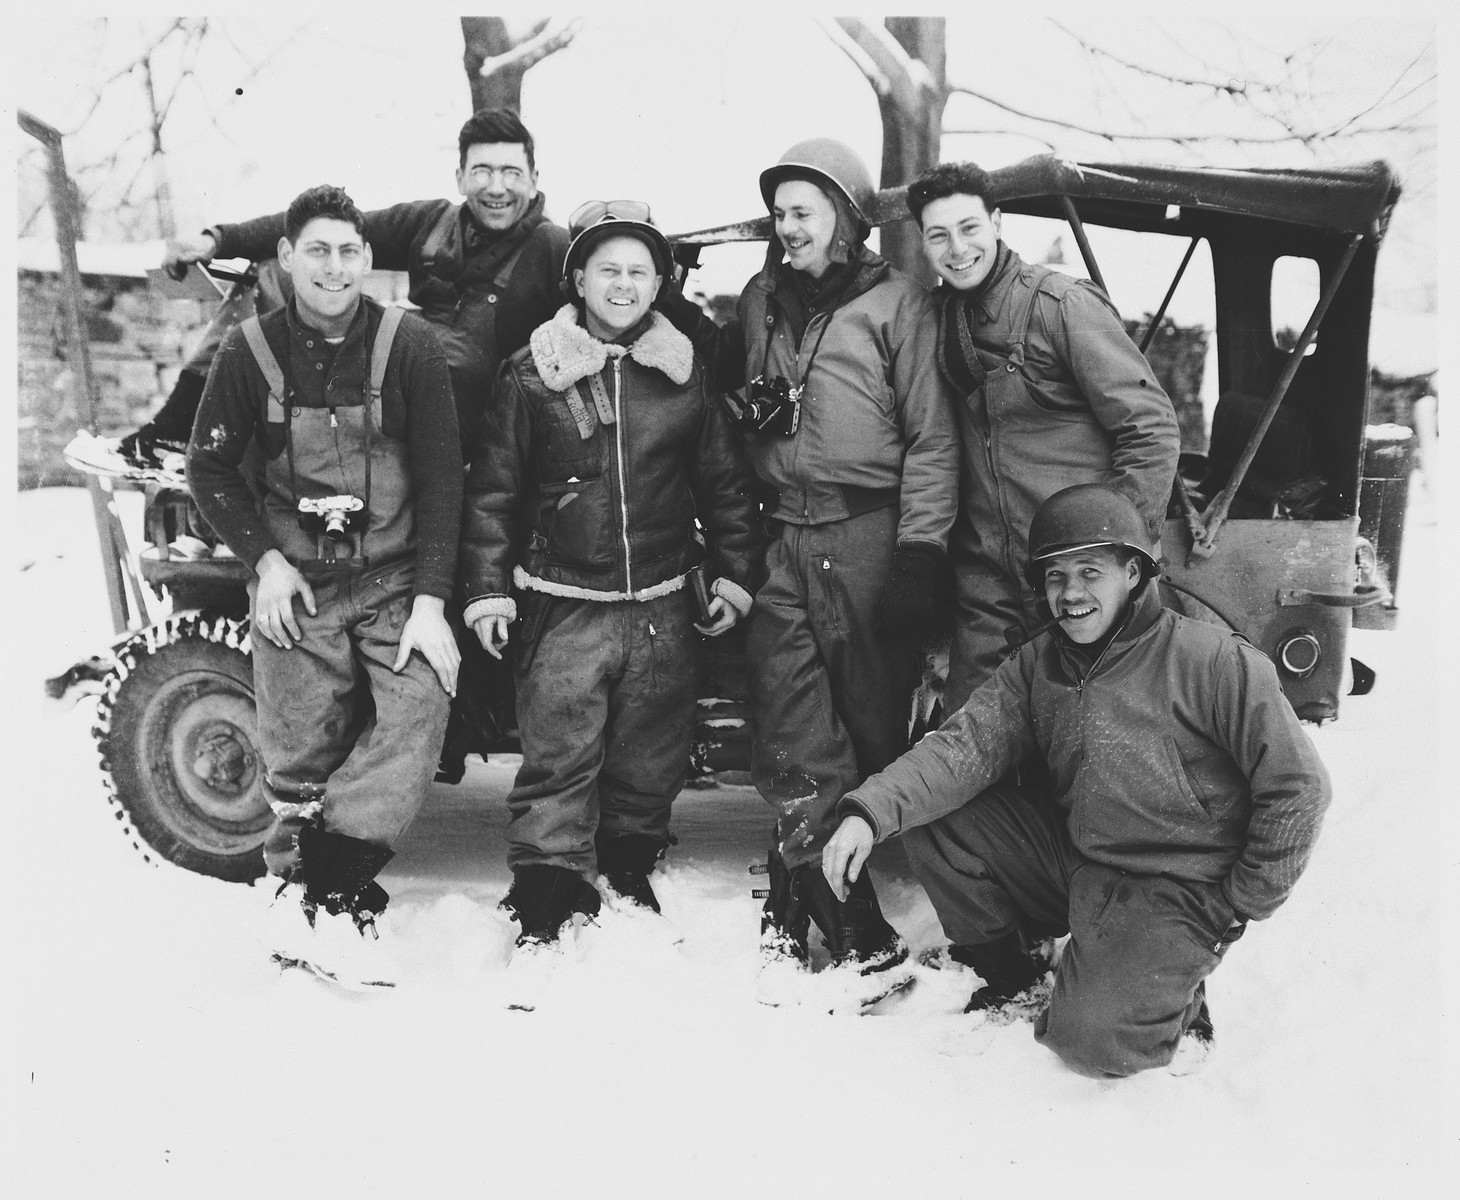 Actor Mickey Rooney poses with the U.S. combat photographers from the 167th Signal Photo Company during his visit to the ETO (European Theatre of Operations).  Pictured from left to right are: Charles Tesser, Carmen Currad, Mickey Rooney, Arnold Samuelson, Eliot Finkels and John C. Perry (kneeling).